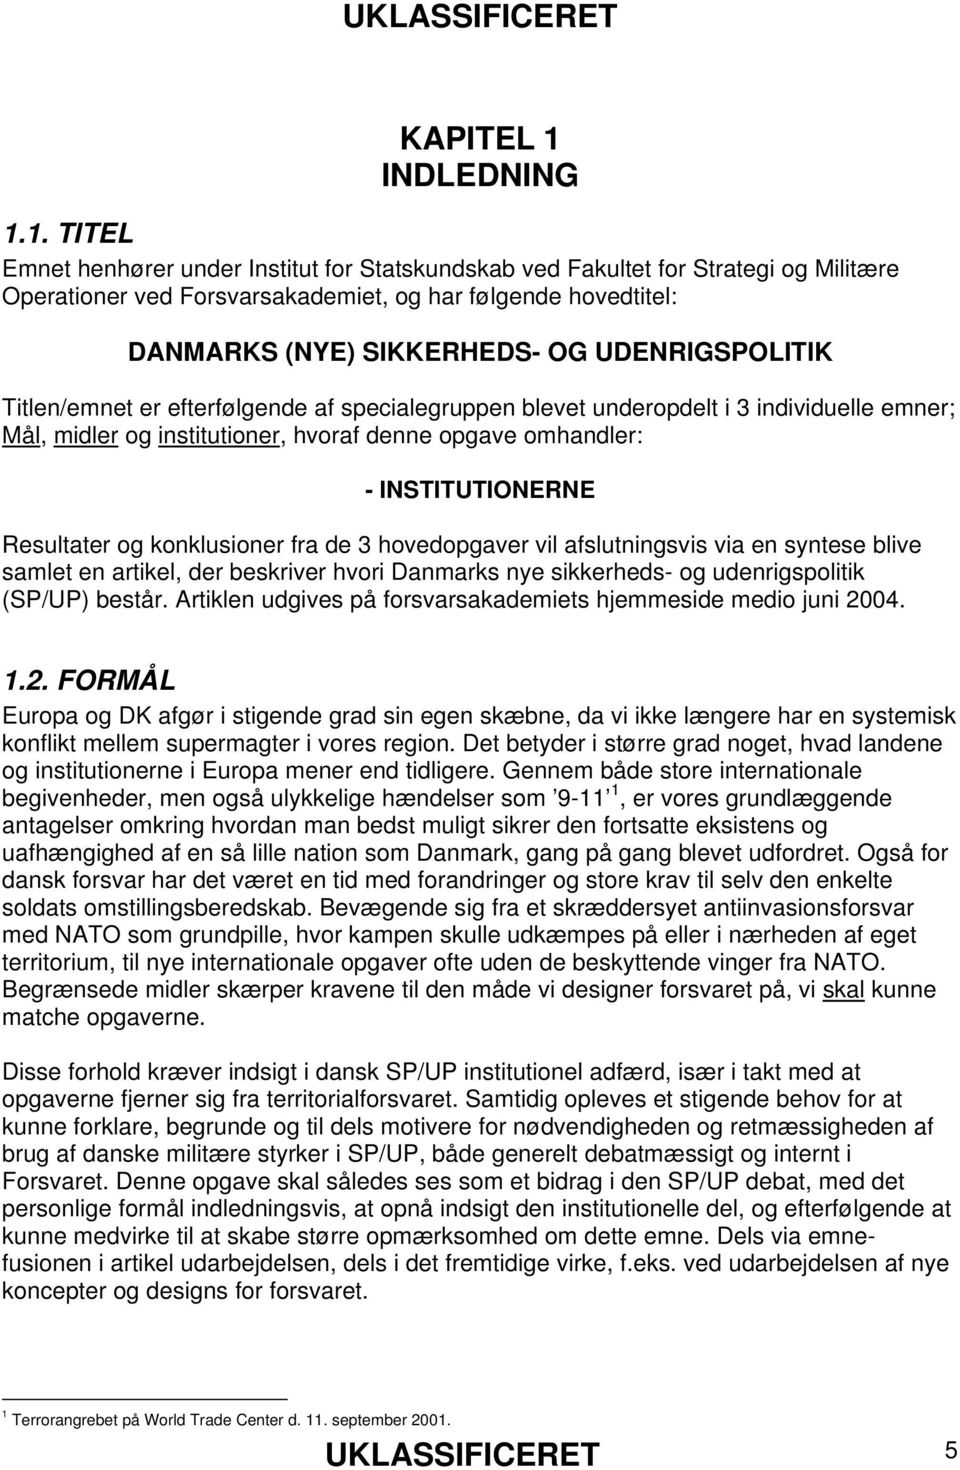 1. TITEL Emnet henhører under Institut for Statskundskab ved Fakultet for Strategi og Militære Operationer ved Forsvarsakademiet, og har følgende hovedtitel: DANMARKS (NYE) SIKKERHEDS- OG